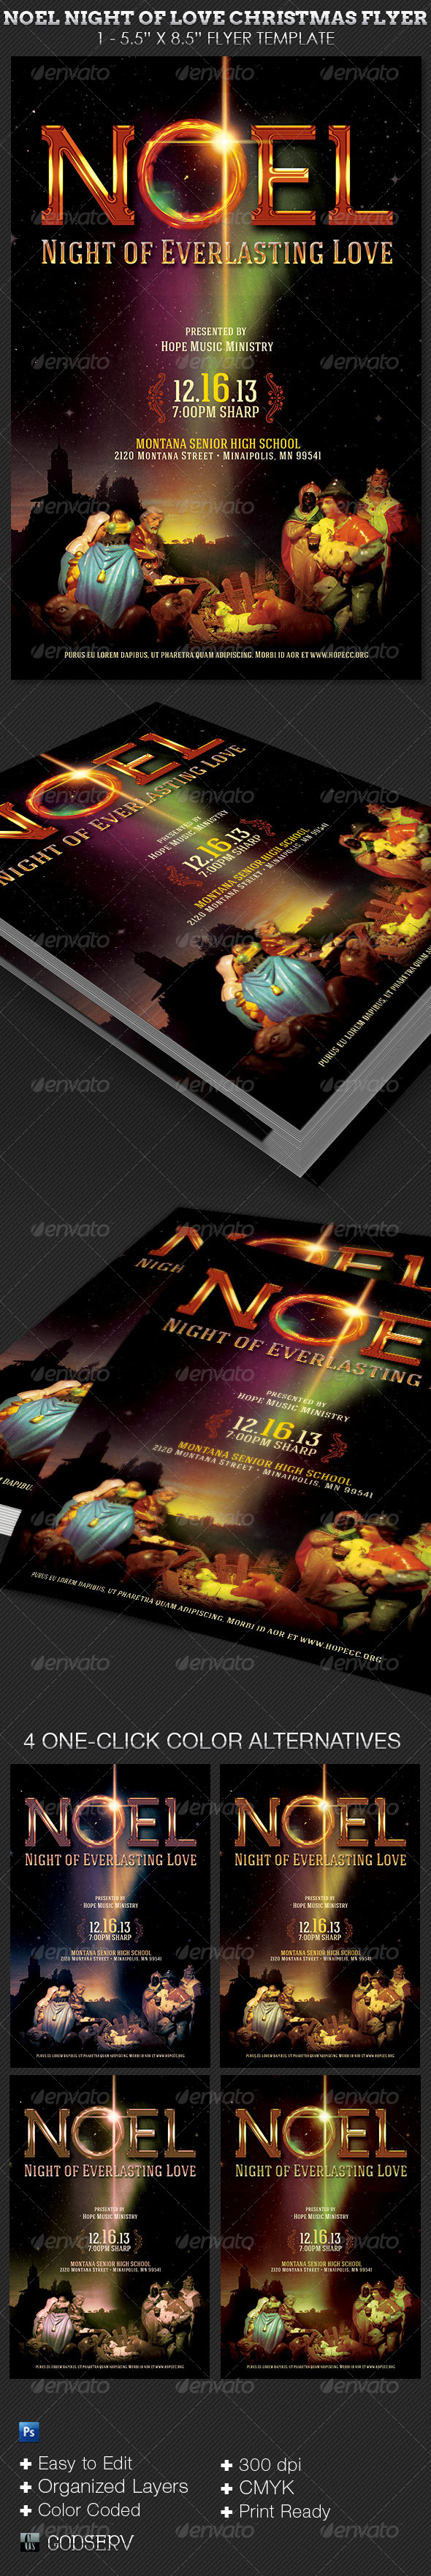 GraphicRiver Noel Night of Love Christmas Flyer Template 6364708